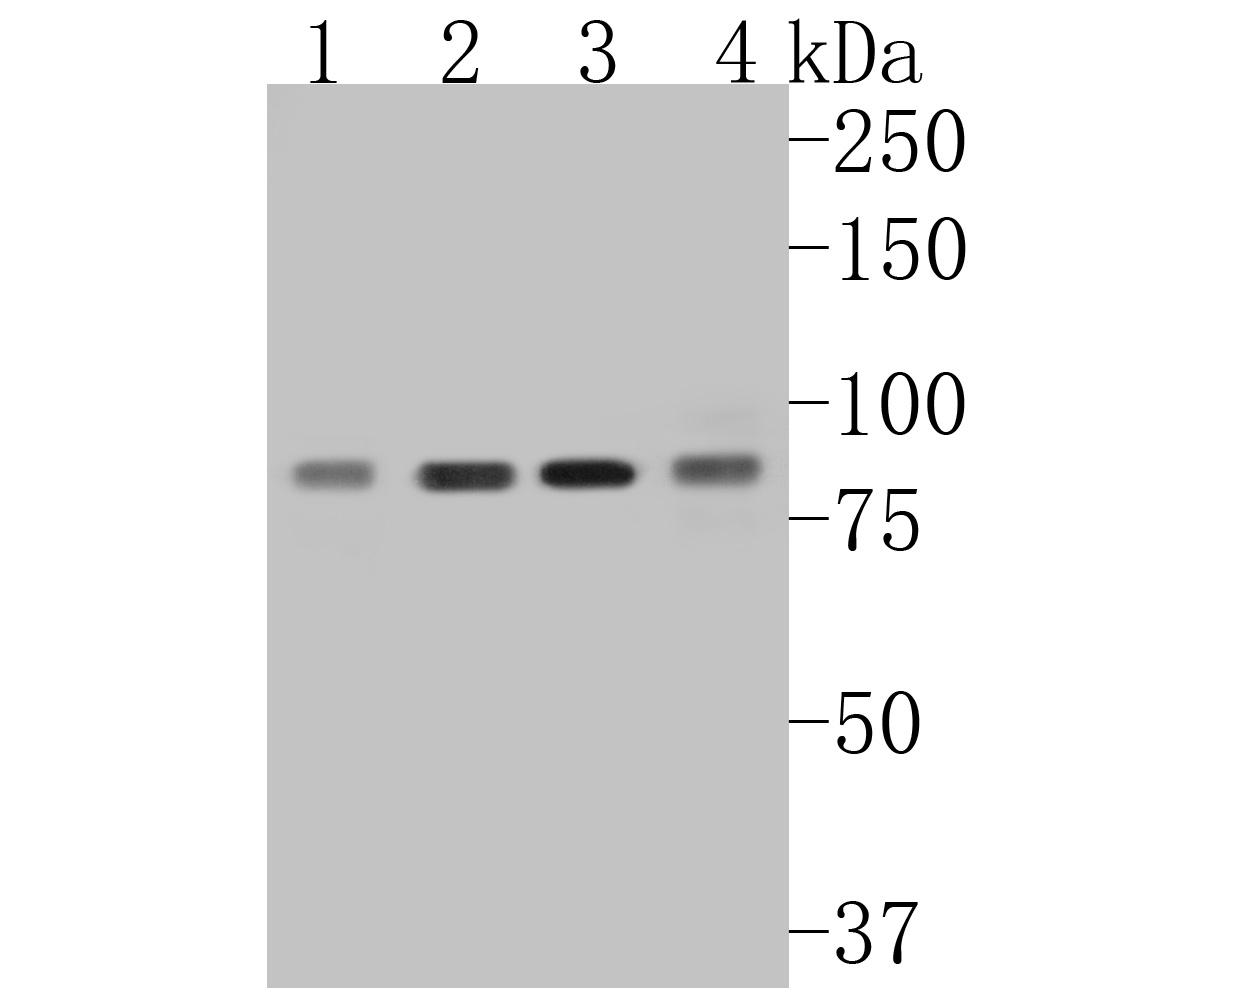 ICC staining of MLH1 in HepG2 cells (green). Formalin fixed cells were permeabilized with 0.1% Triton X-100 in TBS for 10 minutes at room temperature and blocked with 1% Blocker BSA for 15 minutes at room temperature. Cells were probed with the primary antibody (ET1604-41, 1/50) for 1 hour at room temperature, washed with PBS. Alexa Fluor®488 Goat anti-Rabbit IgG was used as the secondary antibody at 1/1,000 dilution. The nuclear counter stain is DAPI (blue).